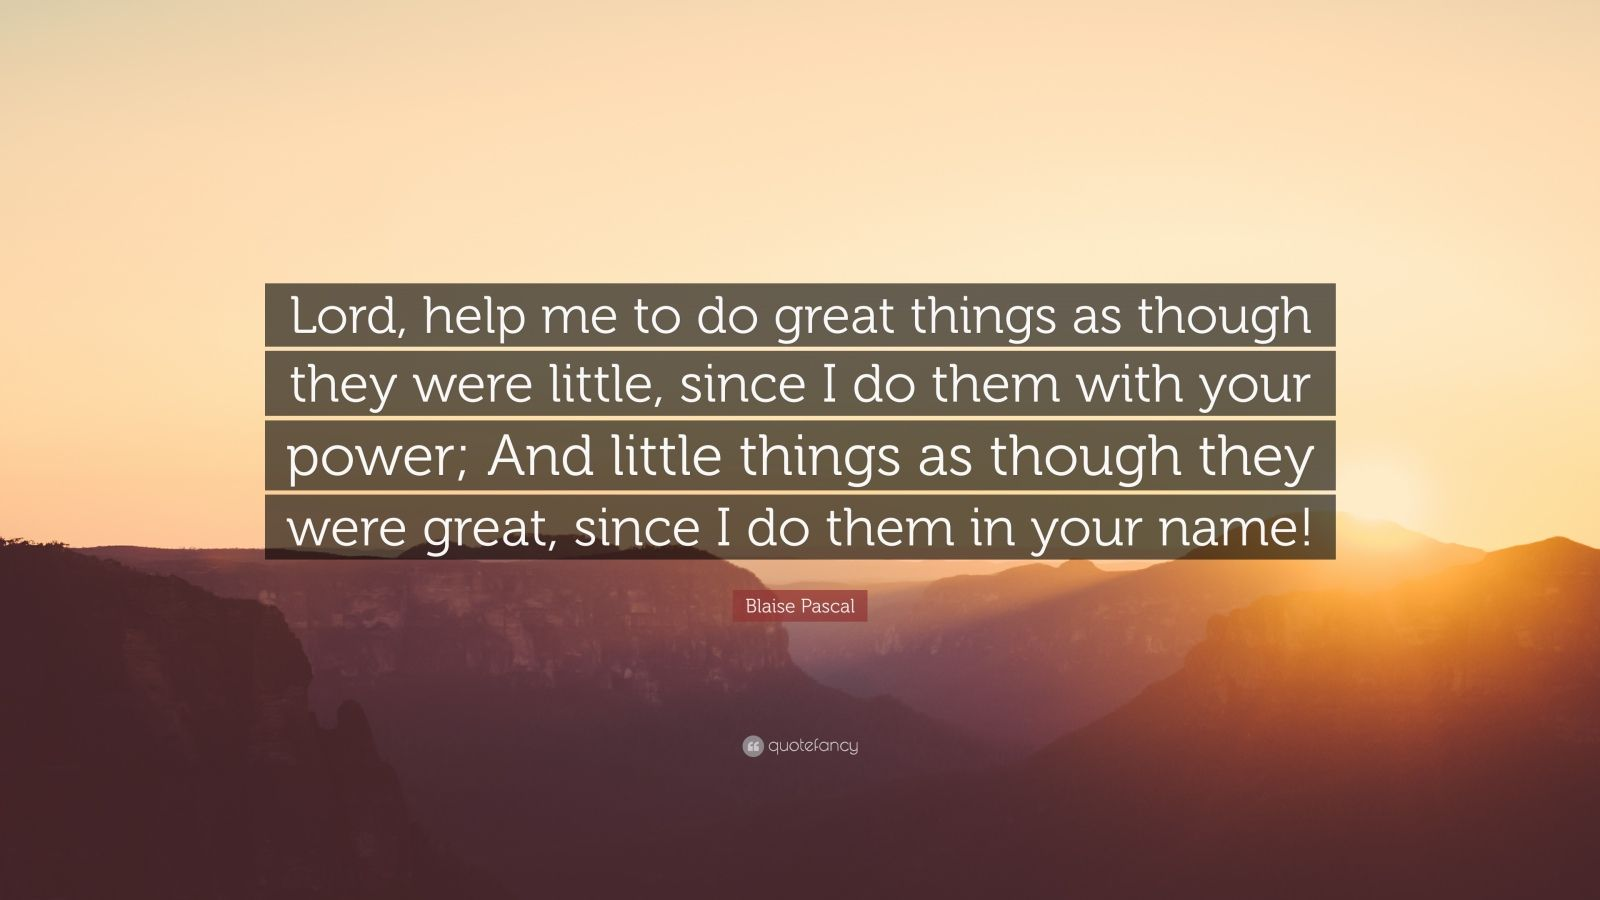 """Blaise Pascal Quote: """"Lord, help me to do great things as though they were little, since I do them with your power; And little things as though they were great, since I do them in your name!"""""""